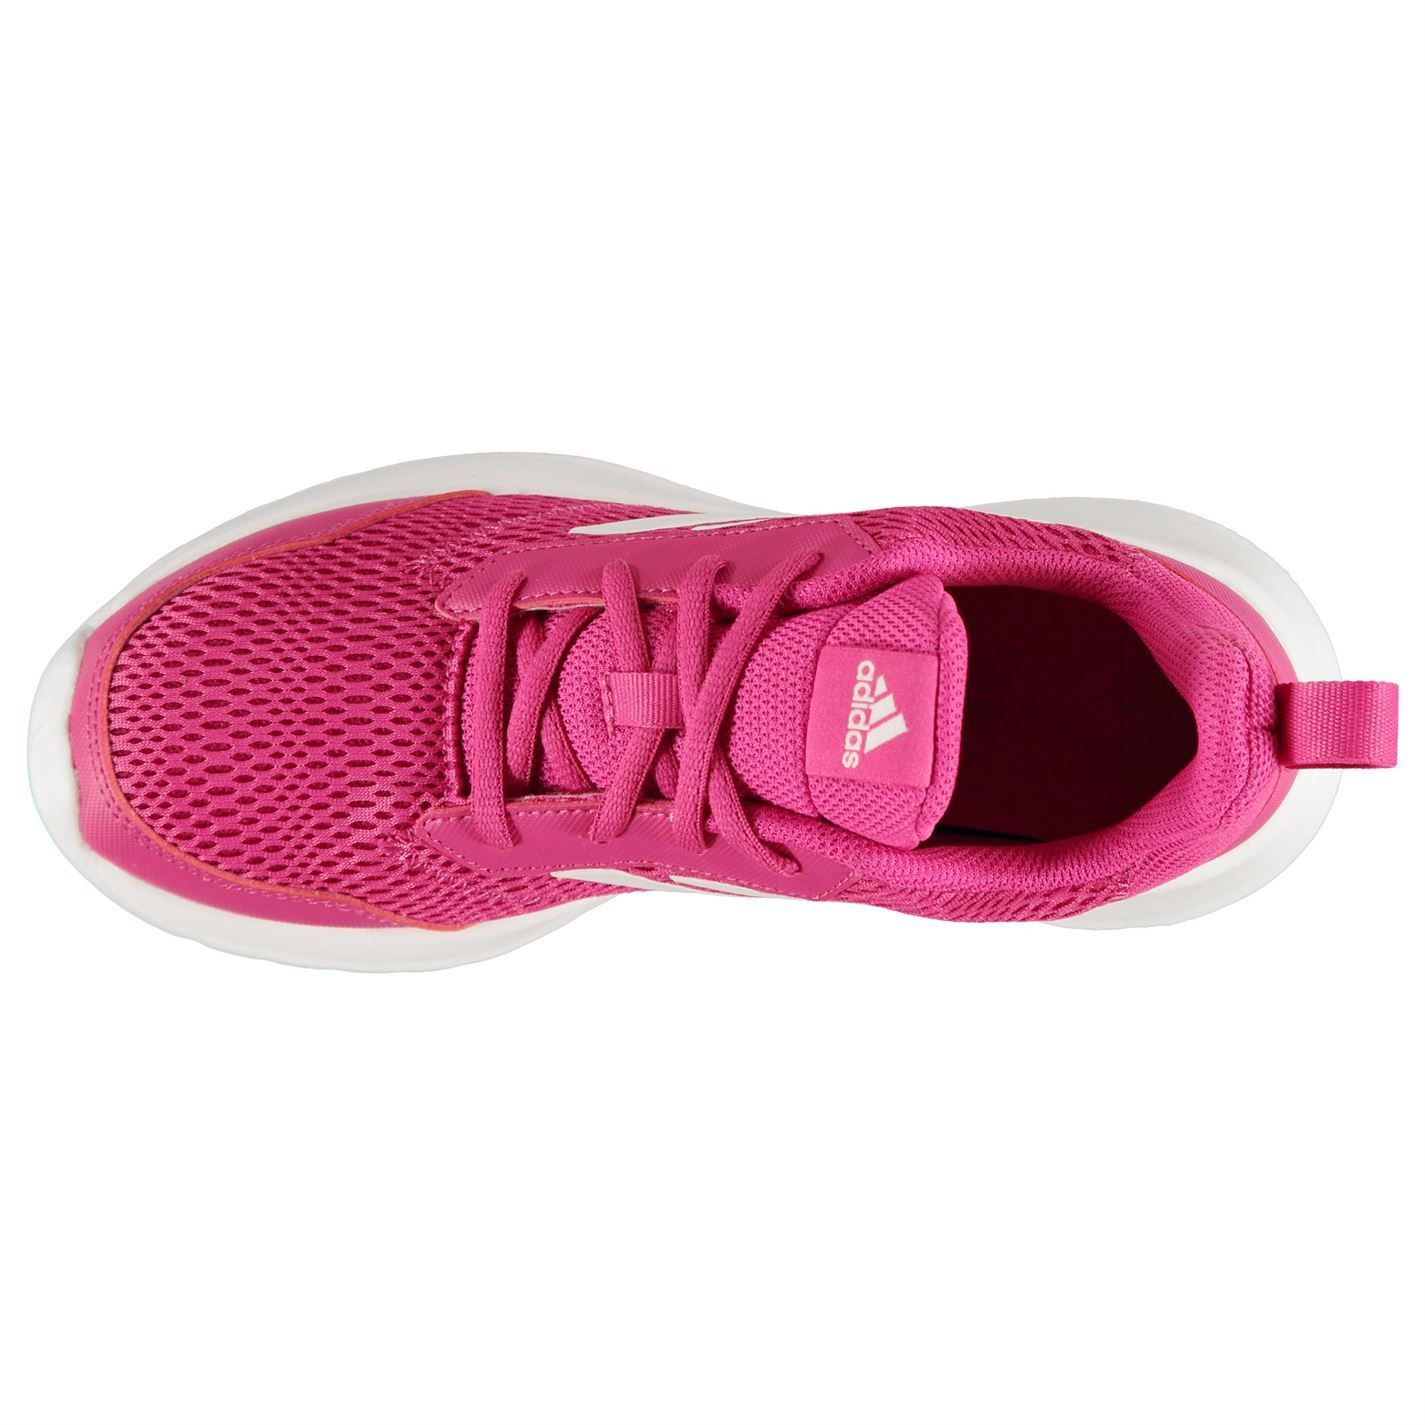 Details about adidas Alta Run Girls Trainers PinkWhite Shoes Footwear